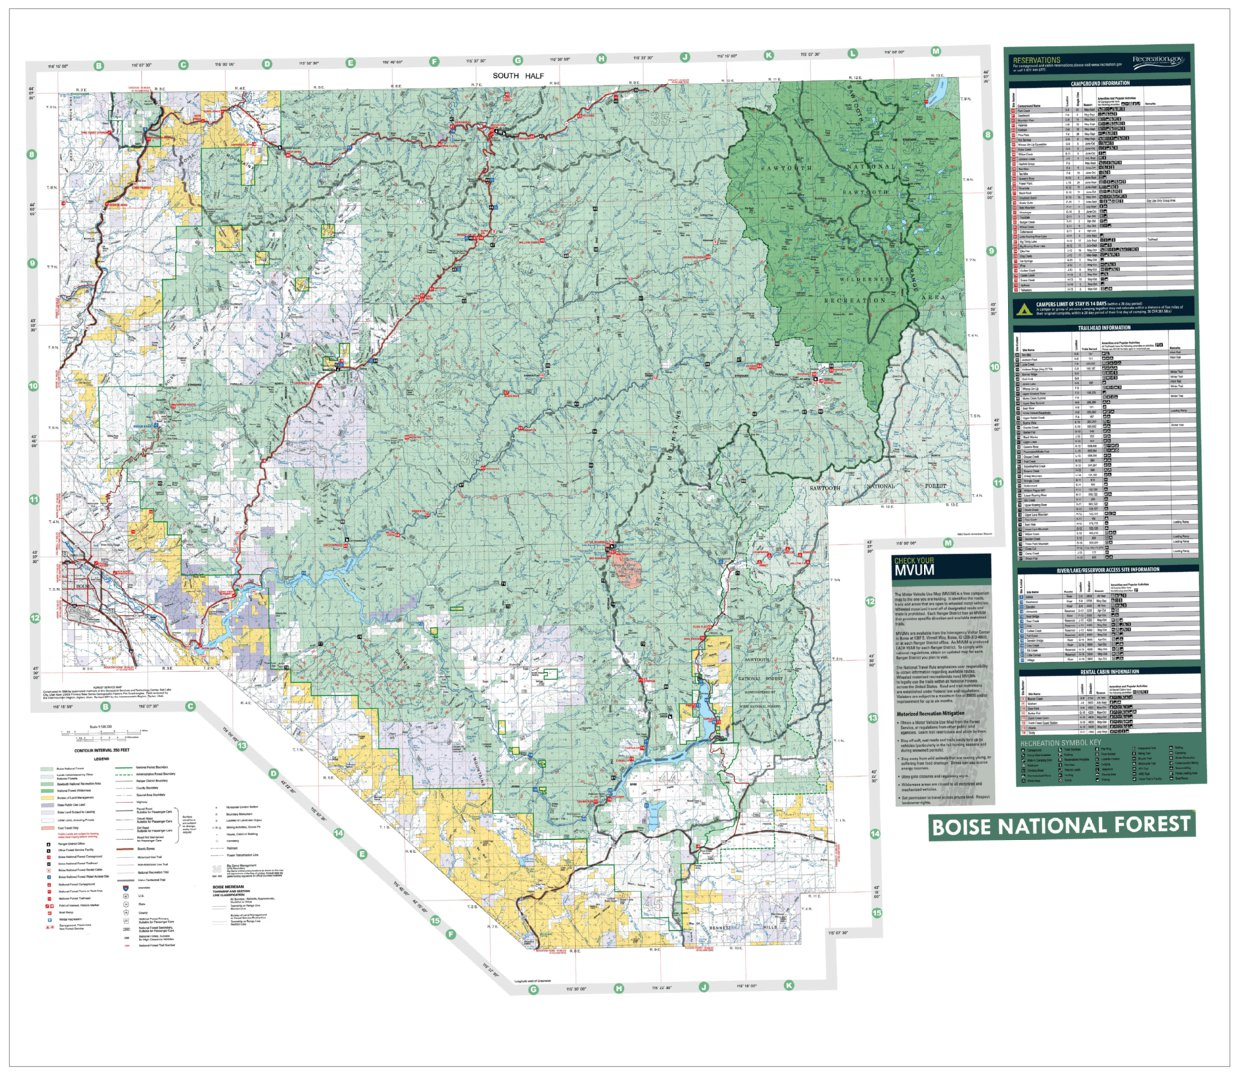 Boise National Forest Visitor Map South Half 2012 - US Forest ...